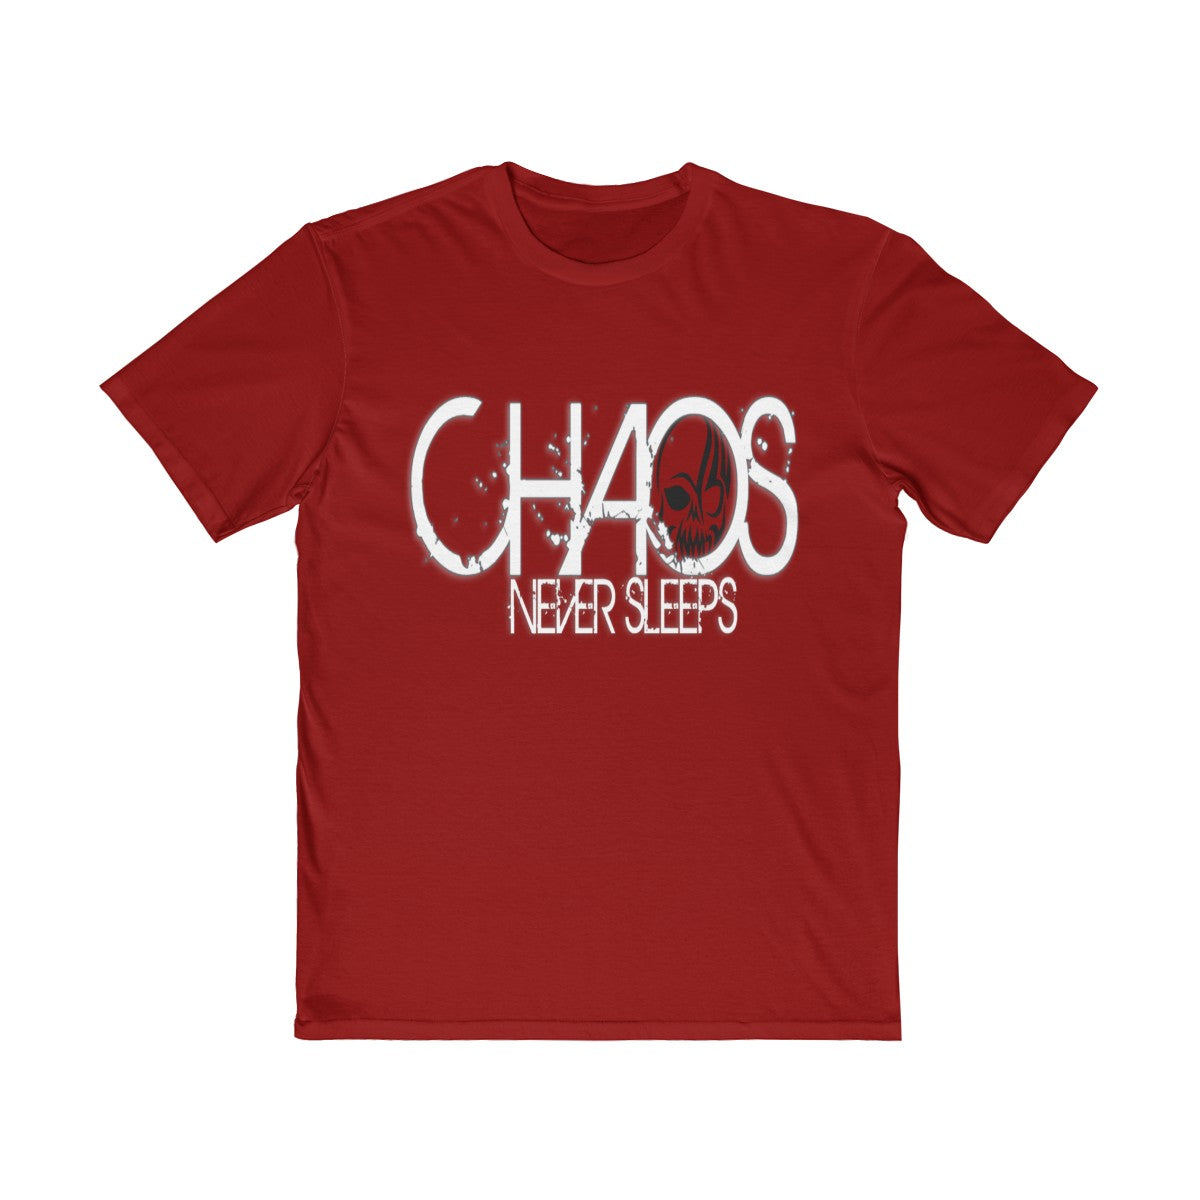 Men's Very Important Tee - Chaos Never Sleeps